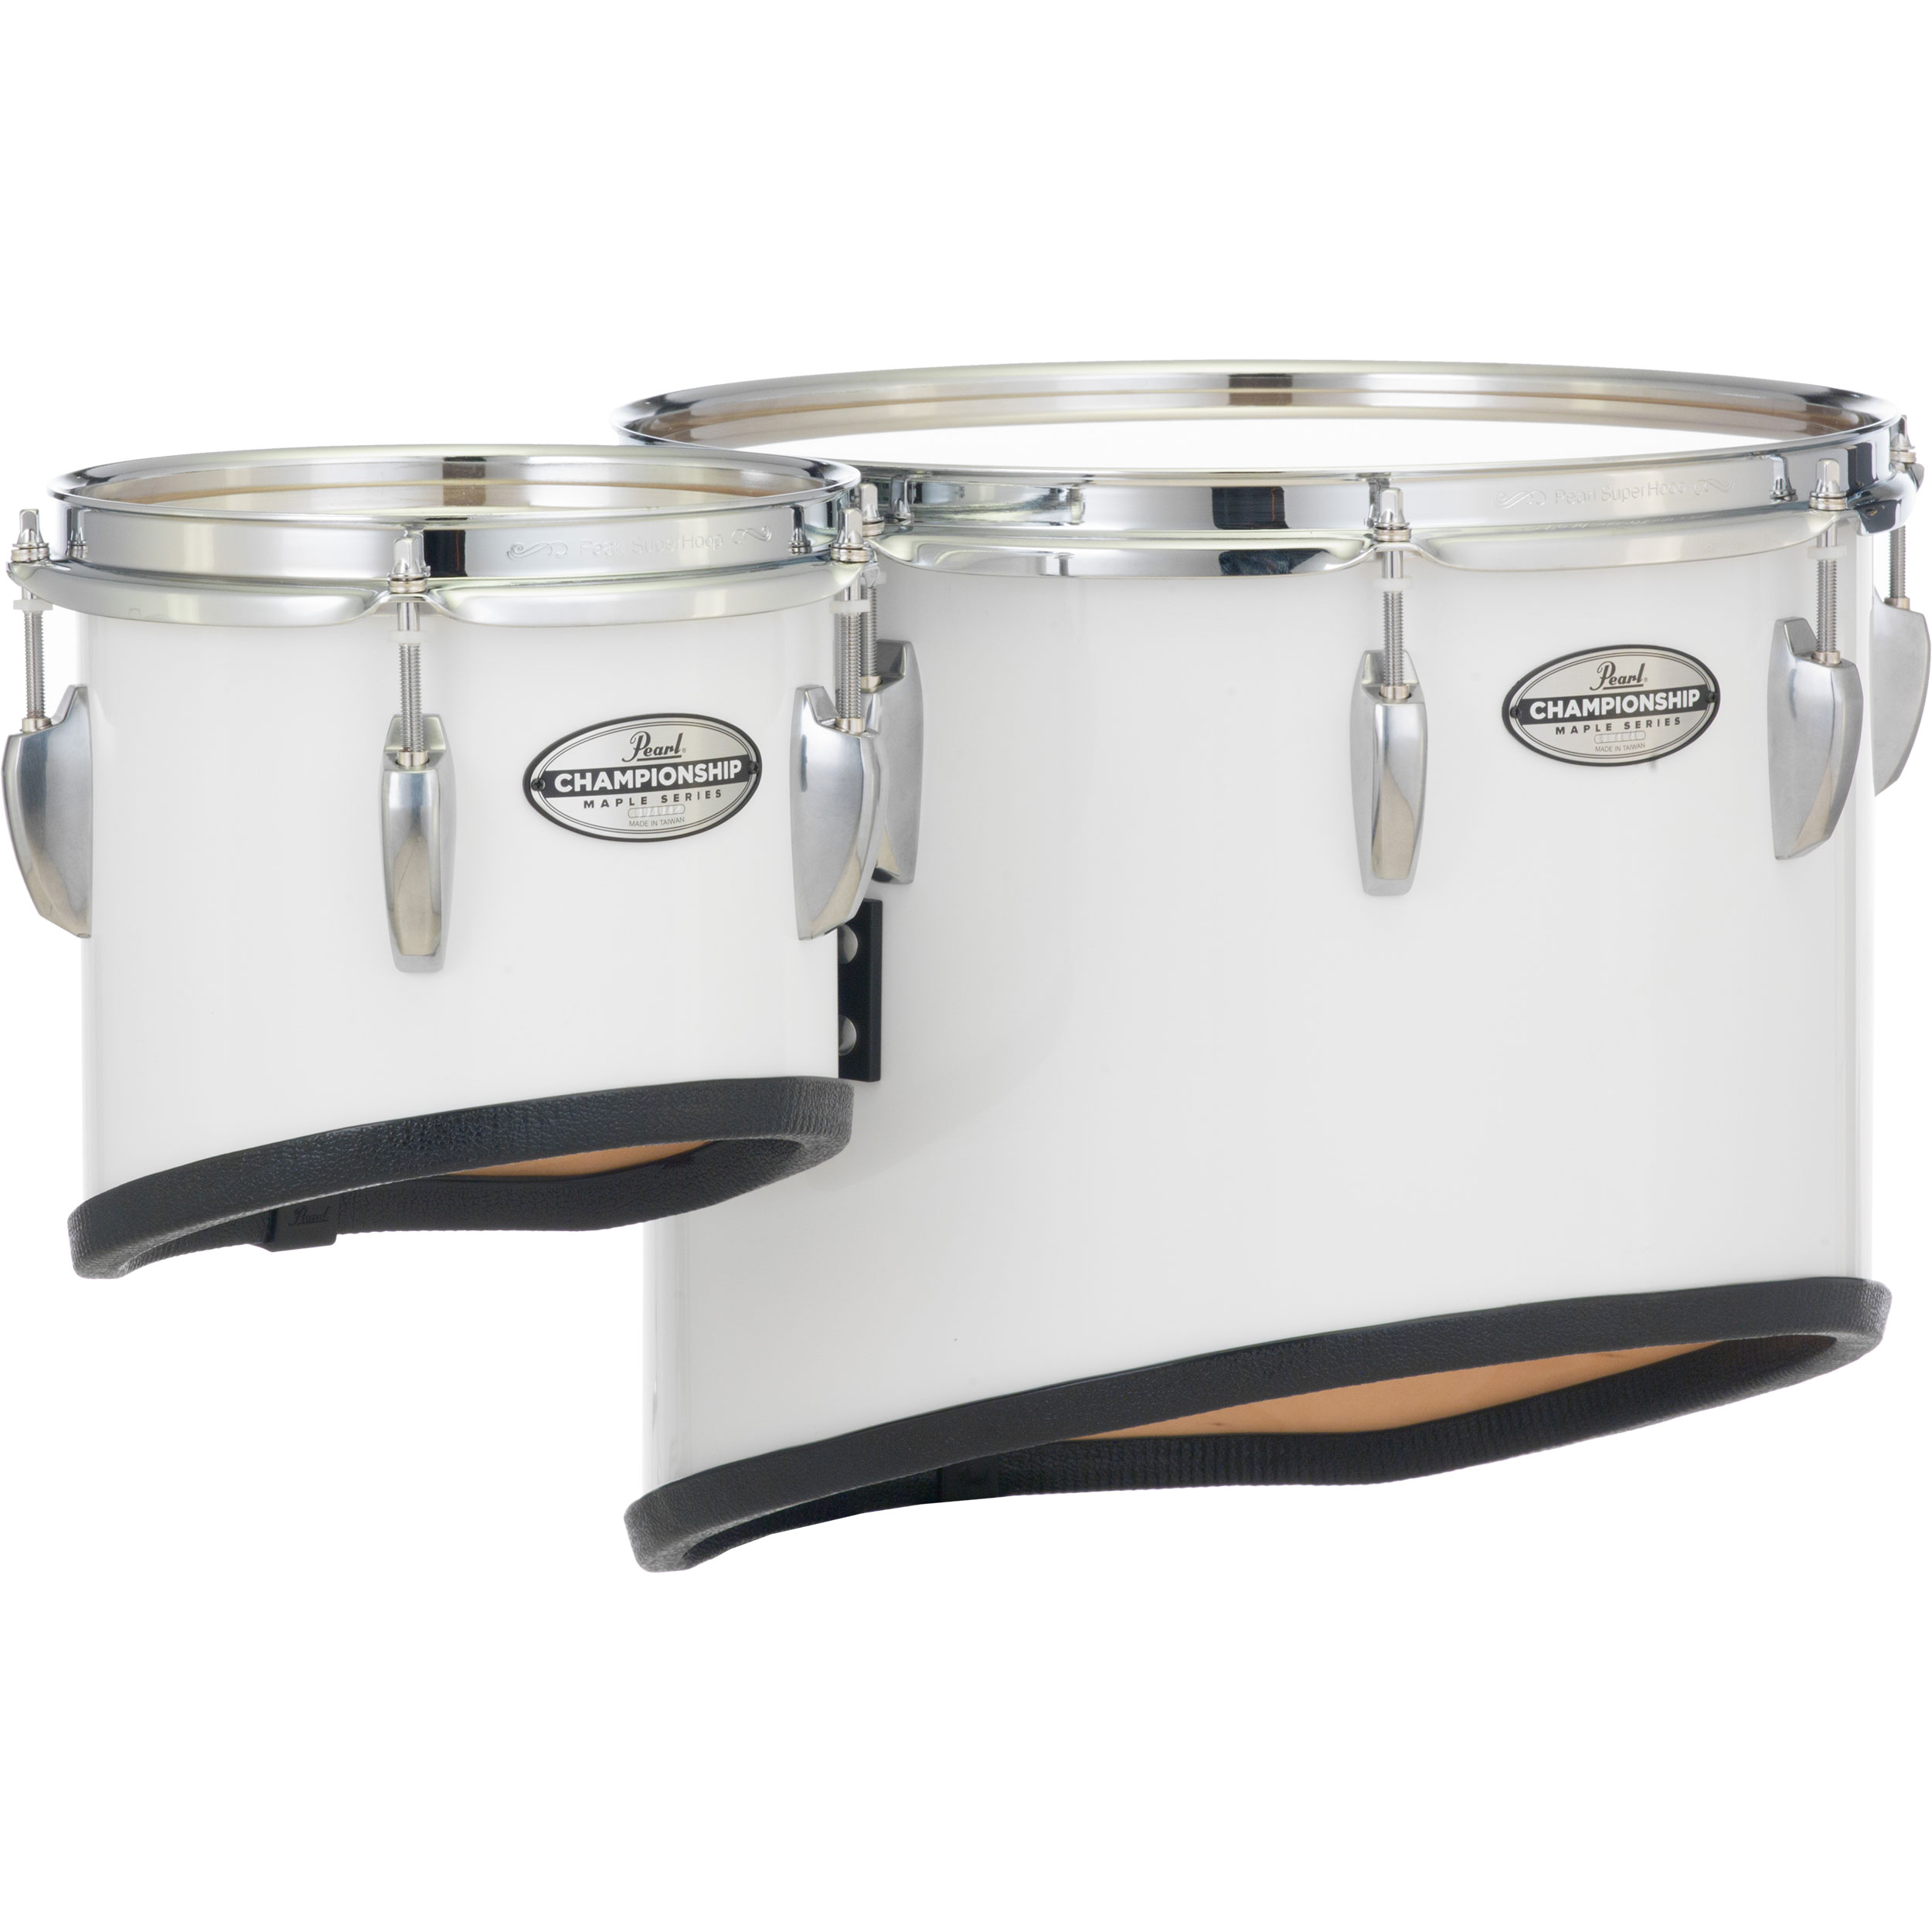 """Pearl 14""""-8"""" Championship Maple Sonic Cut Single Tenor Set with Mounts for CXS1 Carrier with Chrome Hardware (Specify Finish)"""